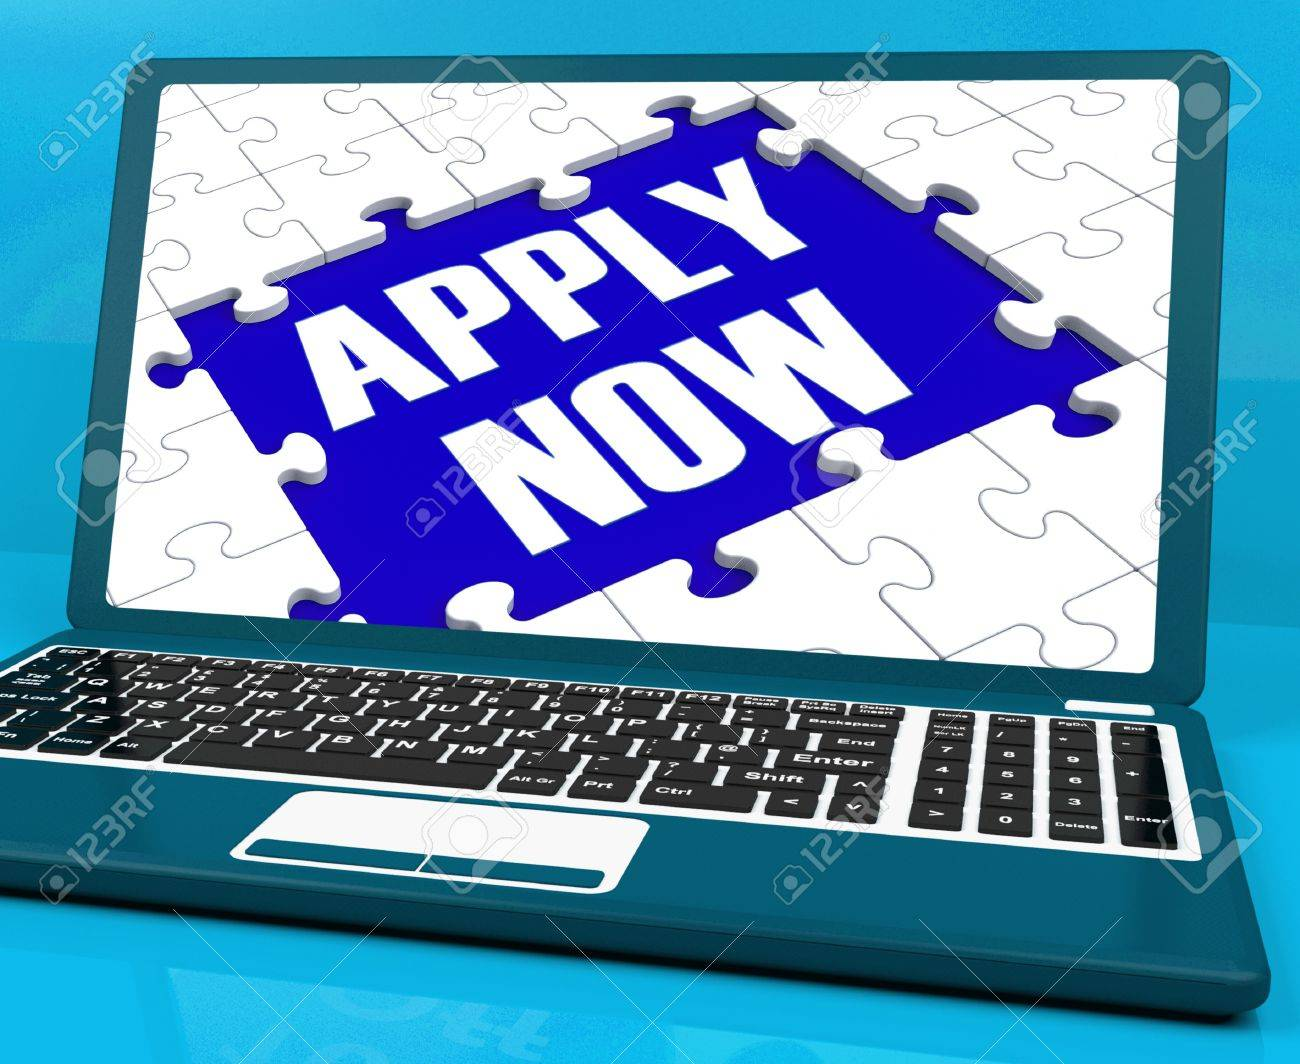 apply now on laptop showing online applications and job apply now on laptop showing online applications and job recruitment stock photo 16936720